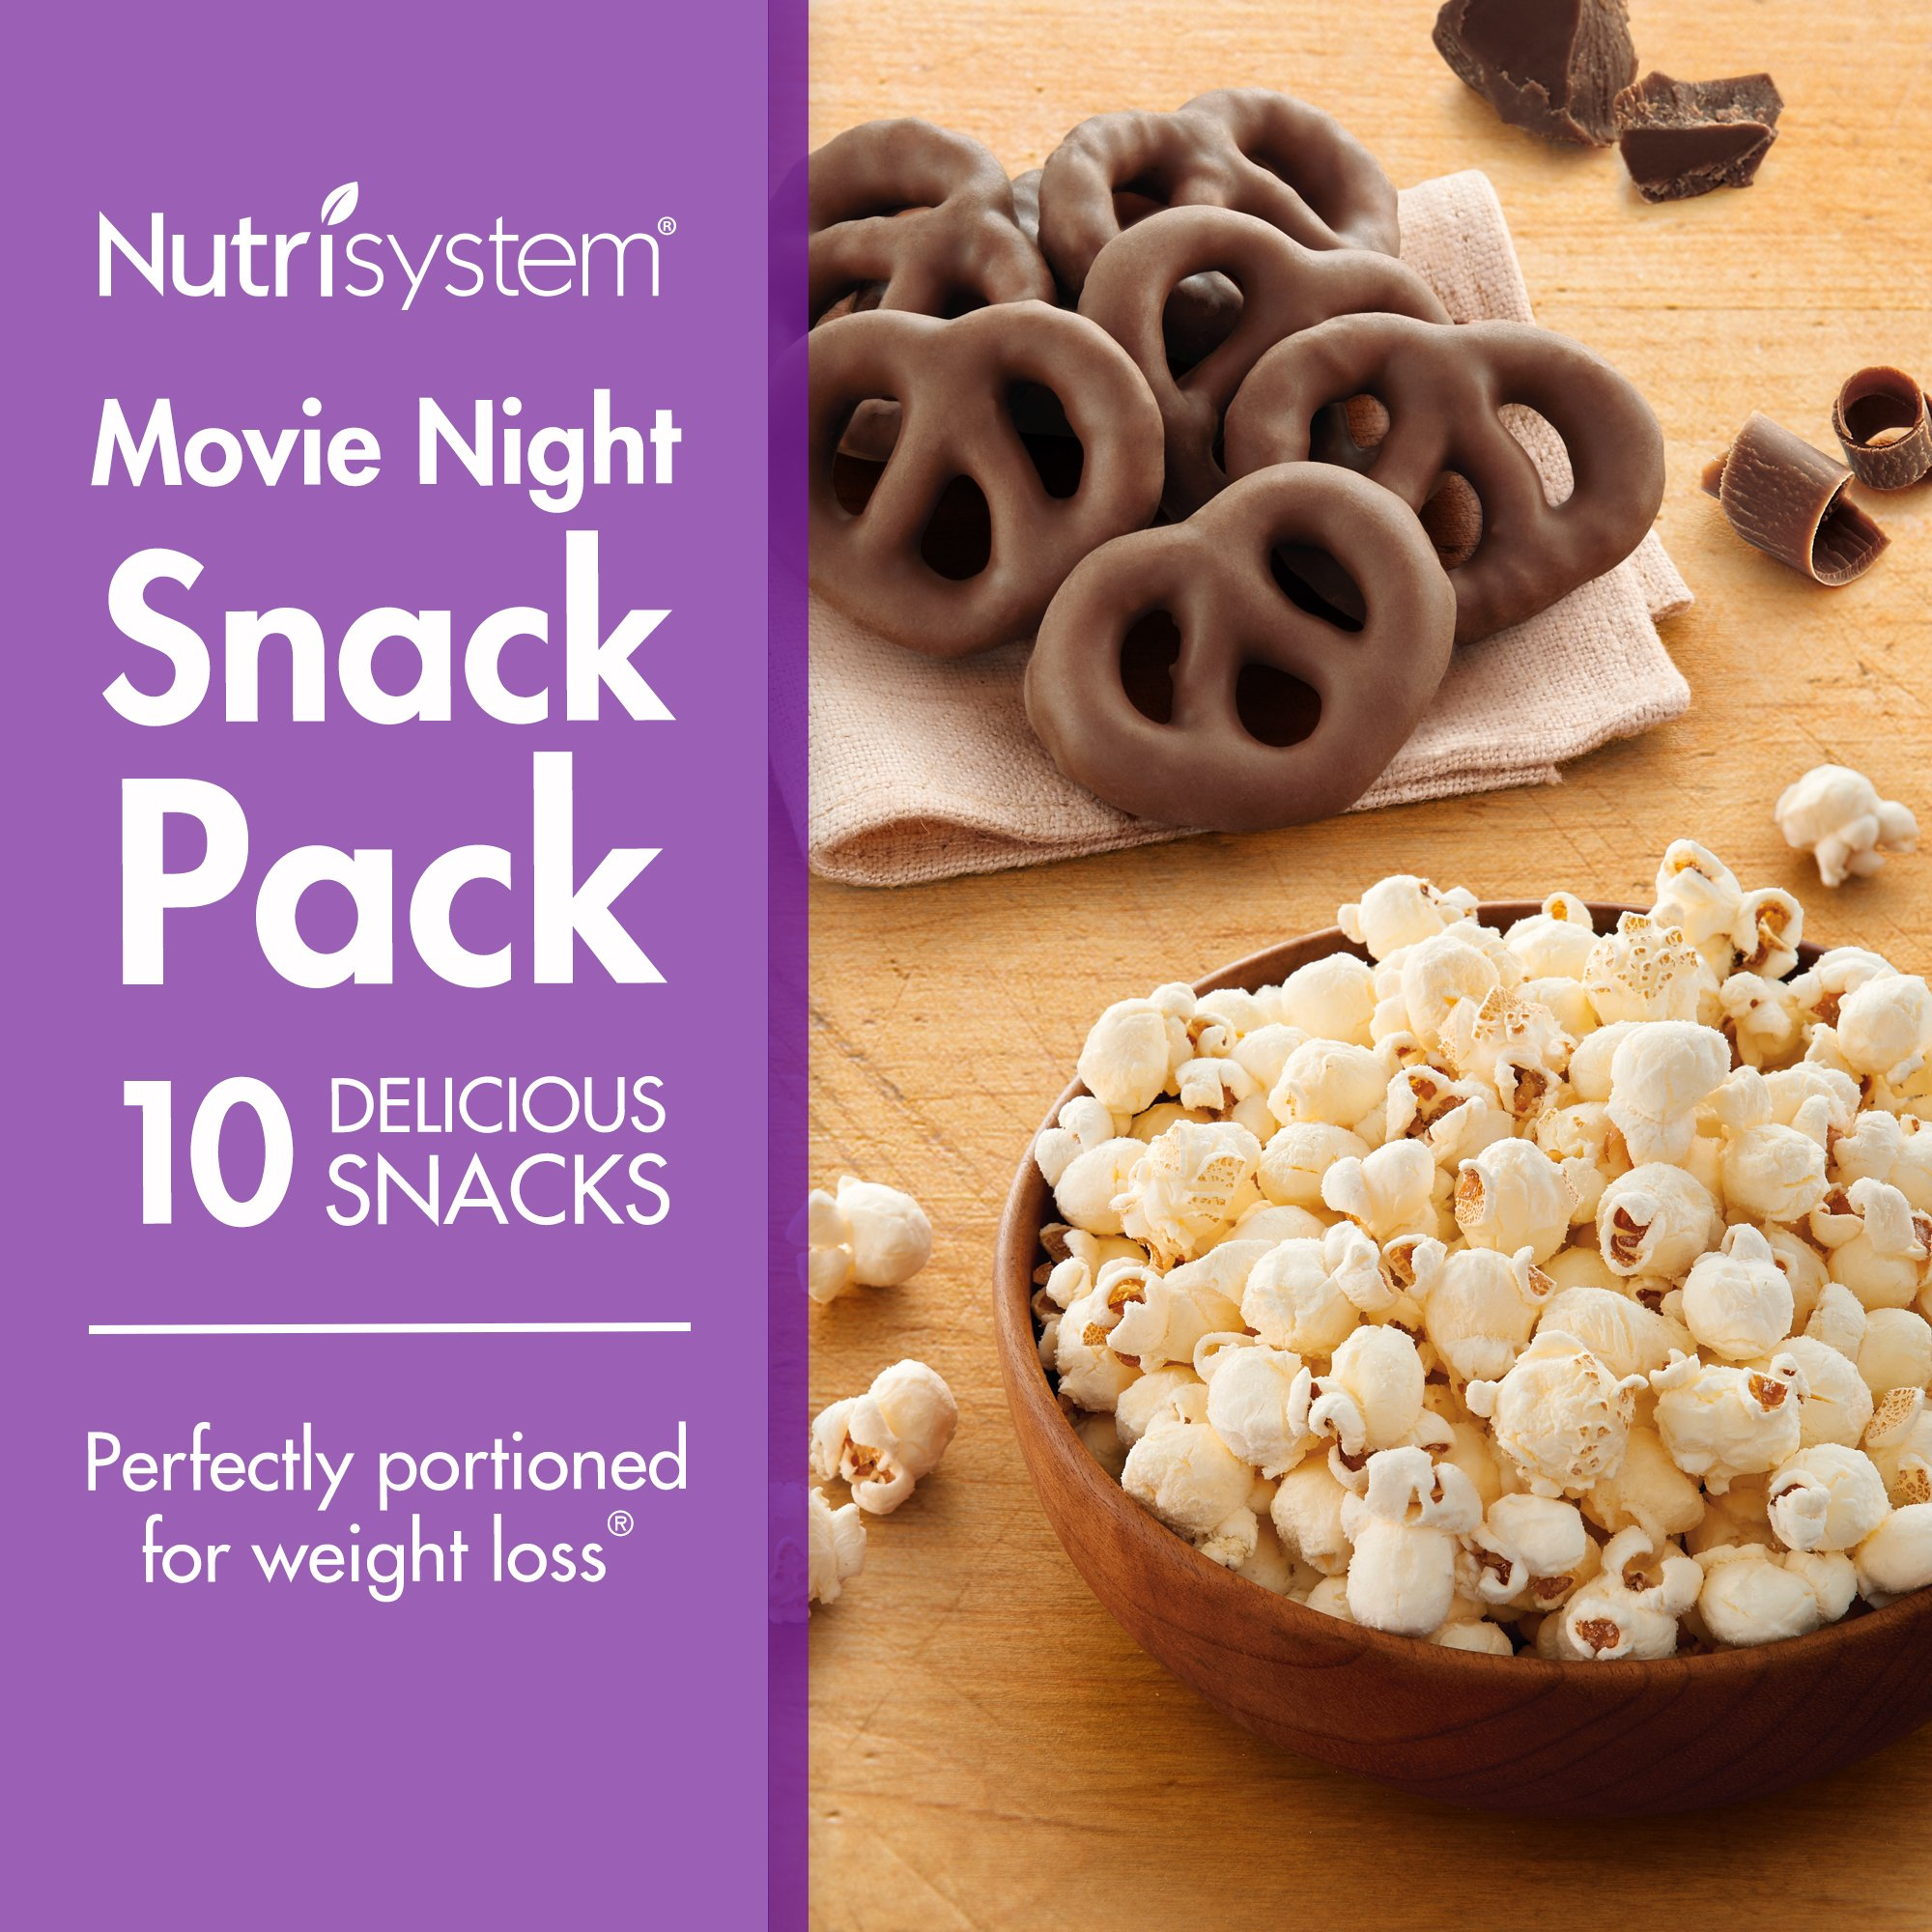 Nutrisystem ® Movie Night Snack Pack